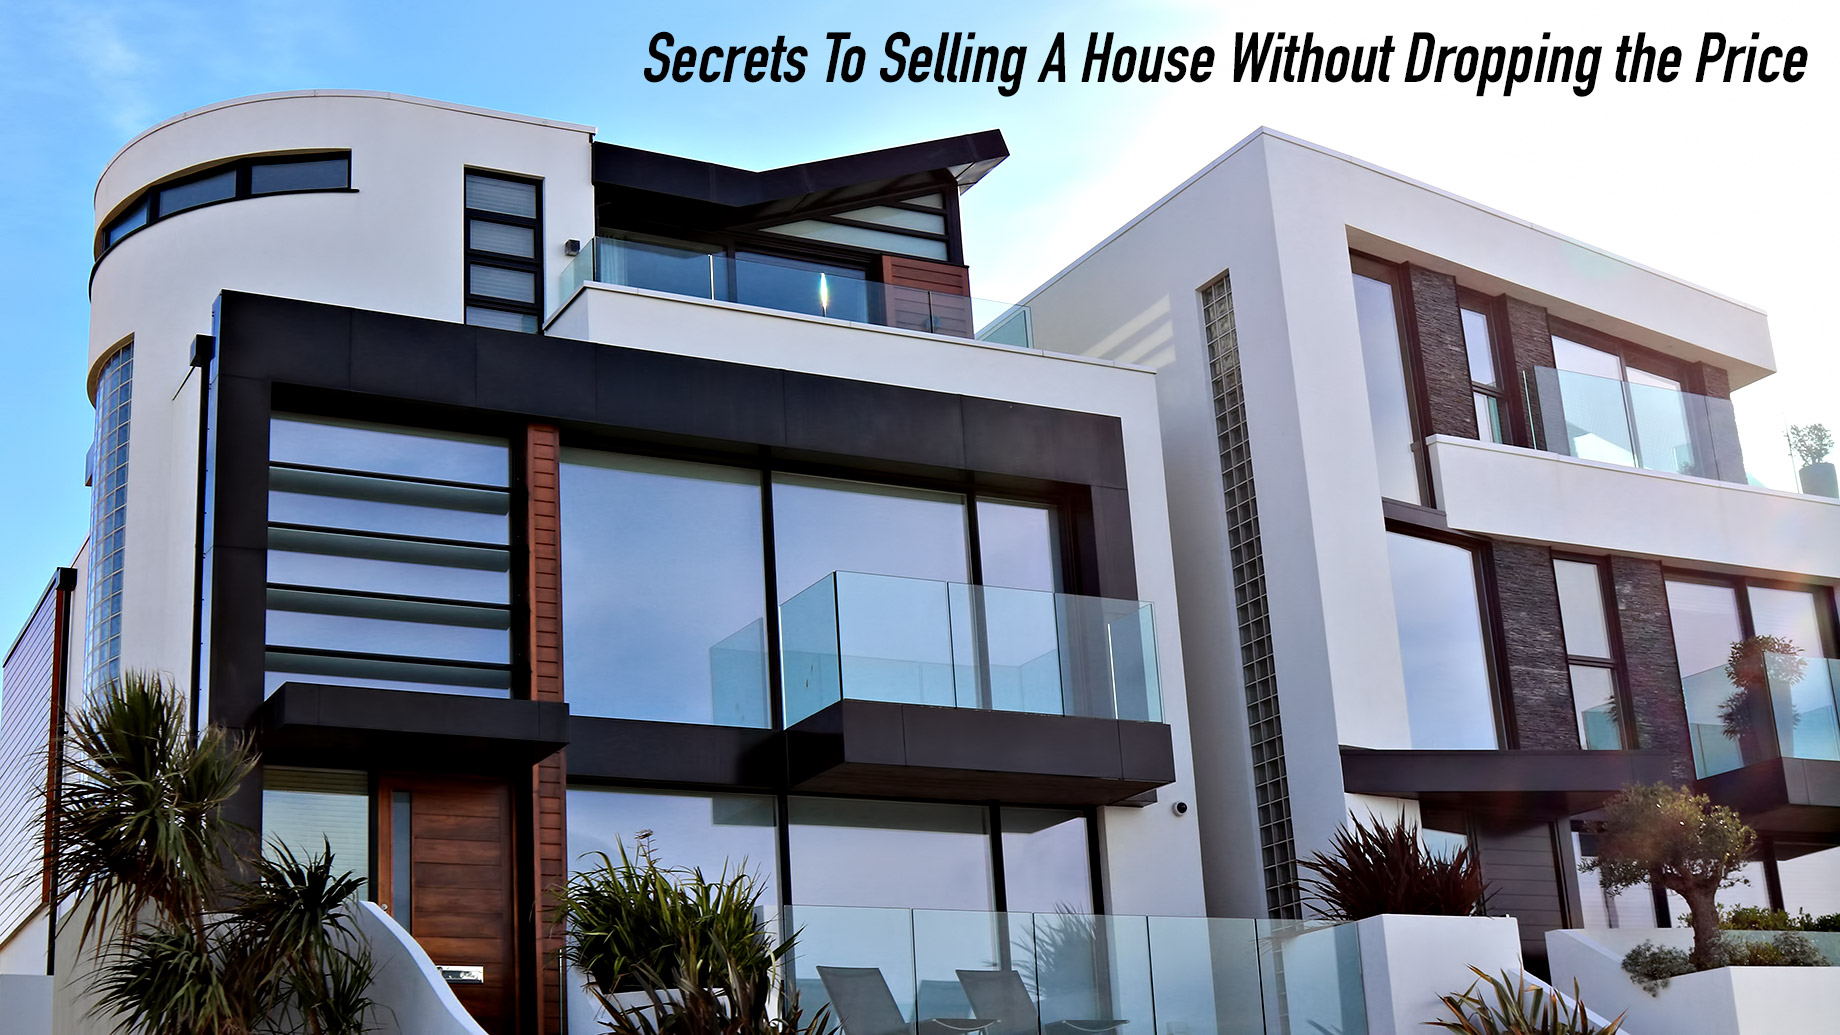 Secrets To Selling A House Without Dropping the Price